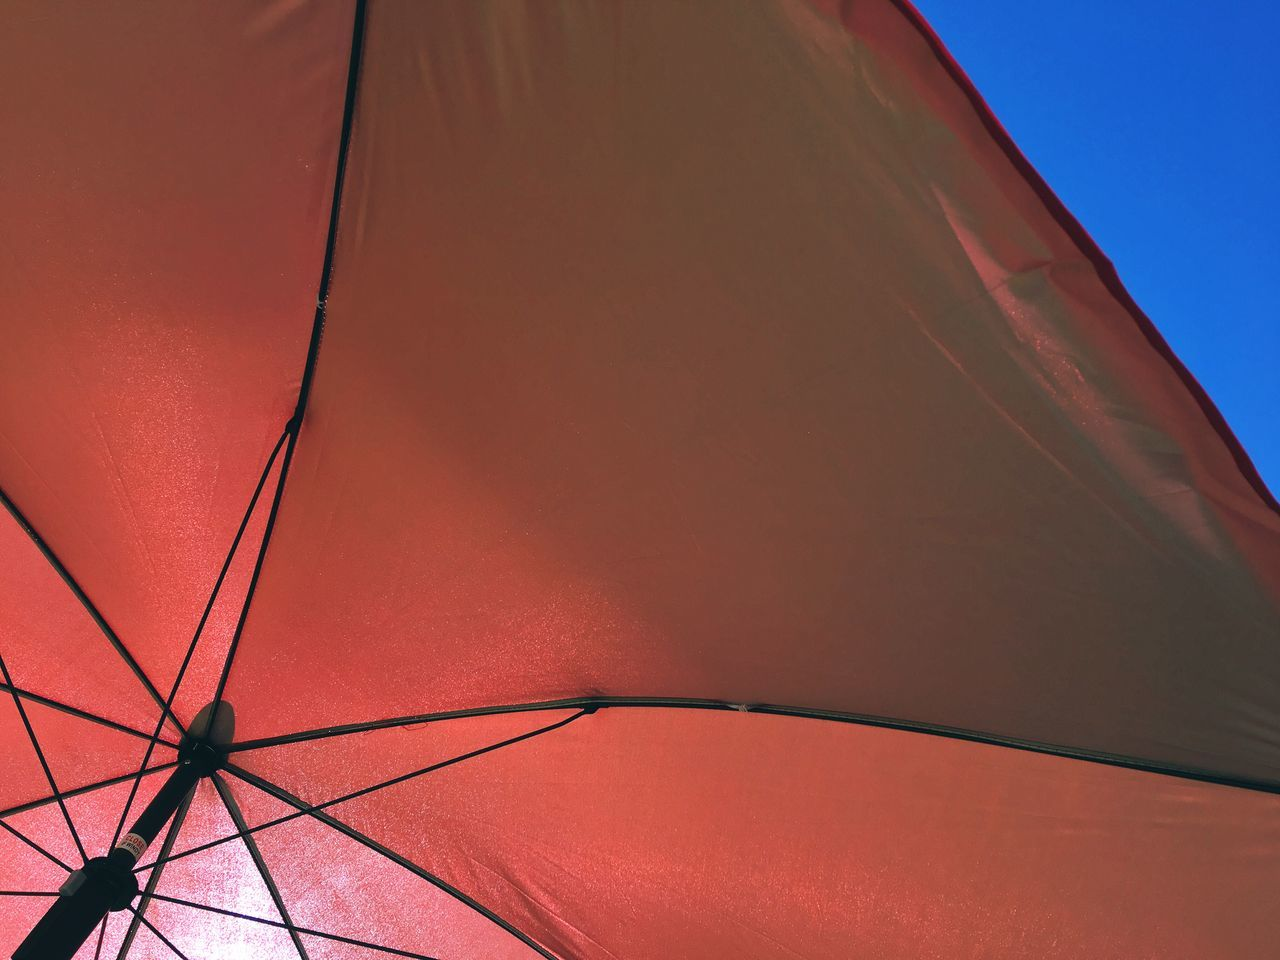 Low Angle View Of Red Parasol Back Lit Beach Umbrella Close-up Color Image Day Horizontal Low Angle View Nature No People Outdoors Parasol Photography Protection Red Single Object Sky Summer Sunlight Sunshade